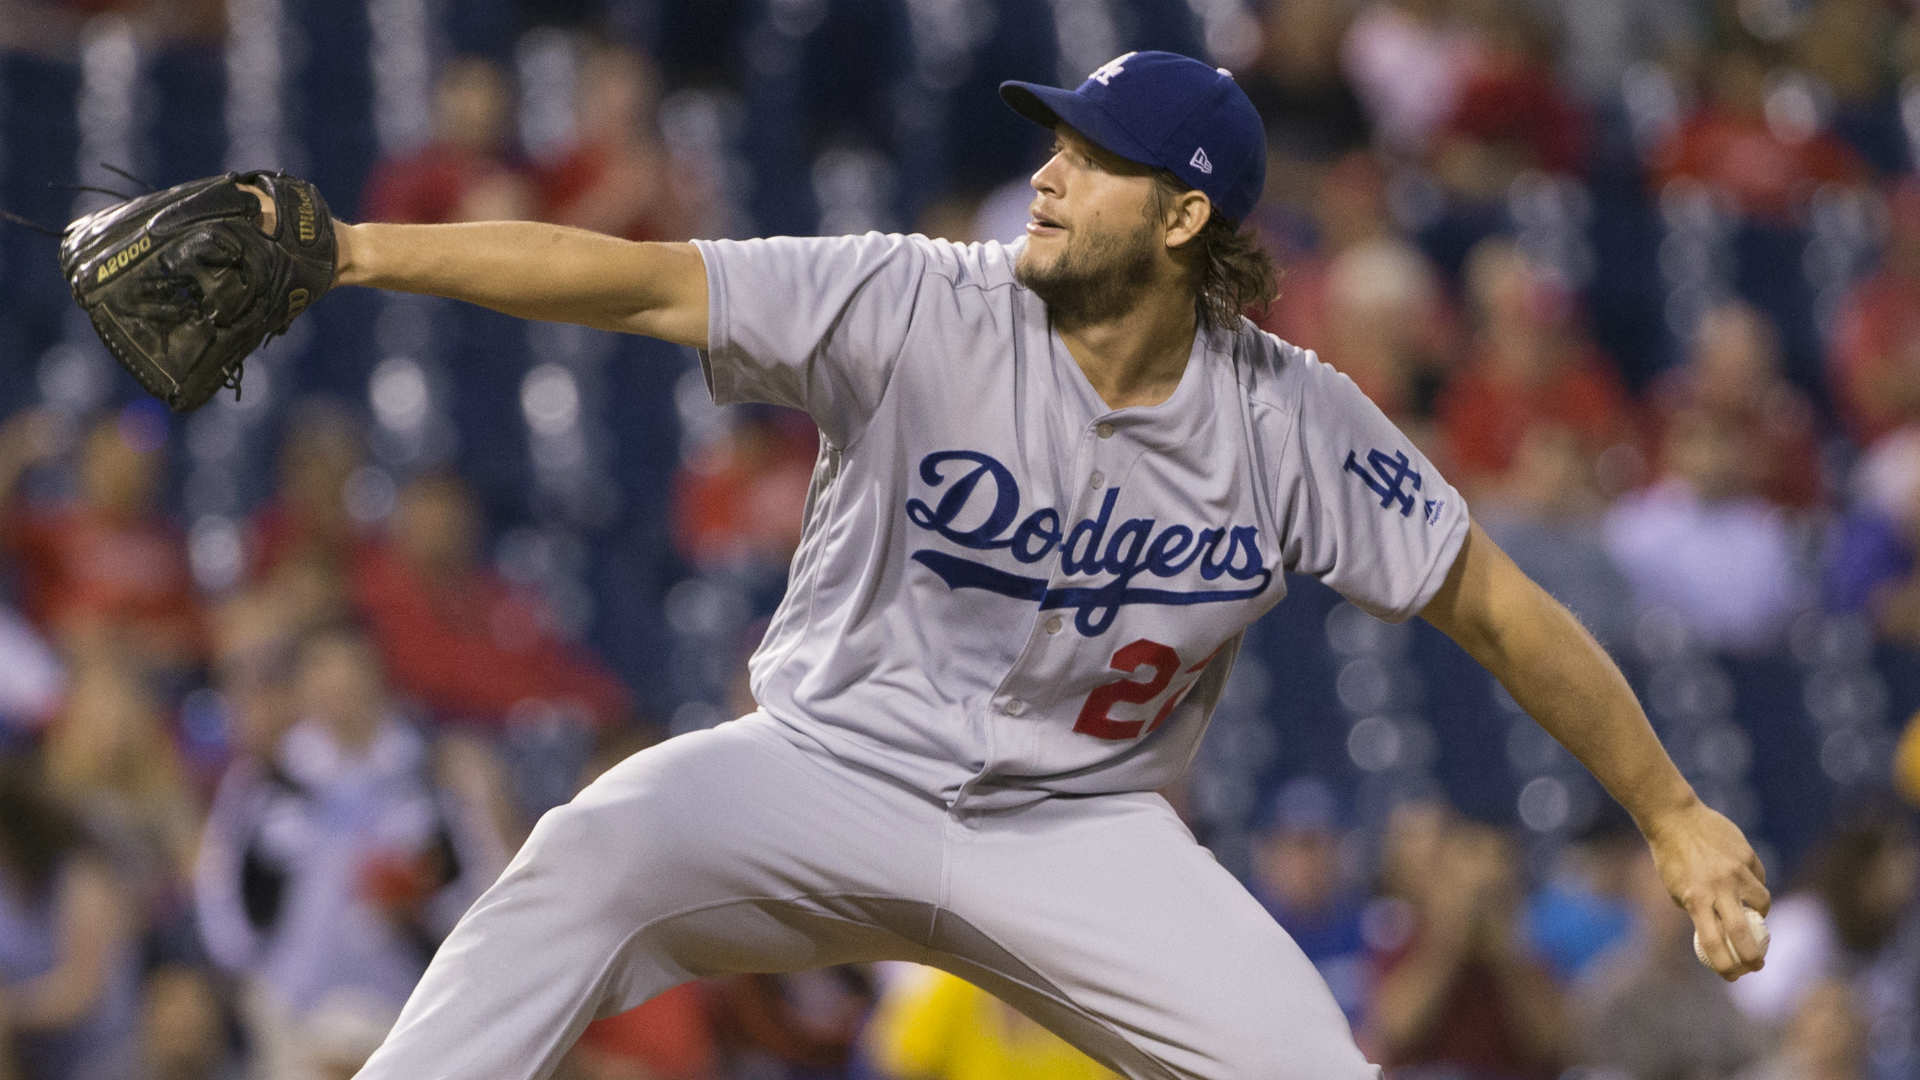 Clayton Kershaw allows first-ever grand slam to Aaron Altherr